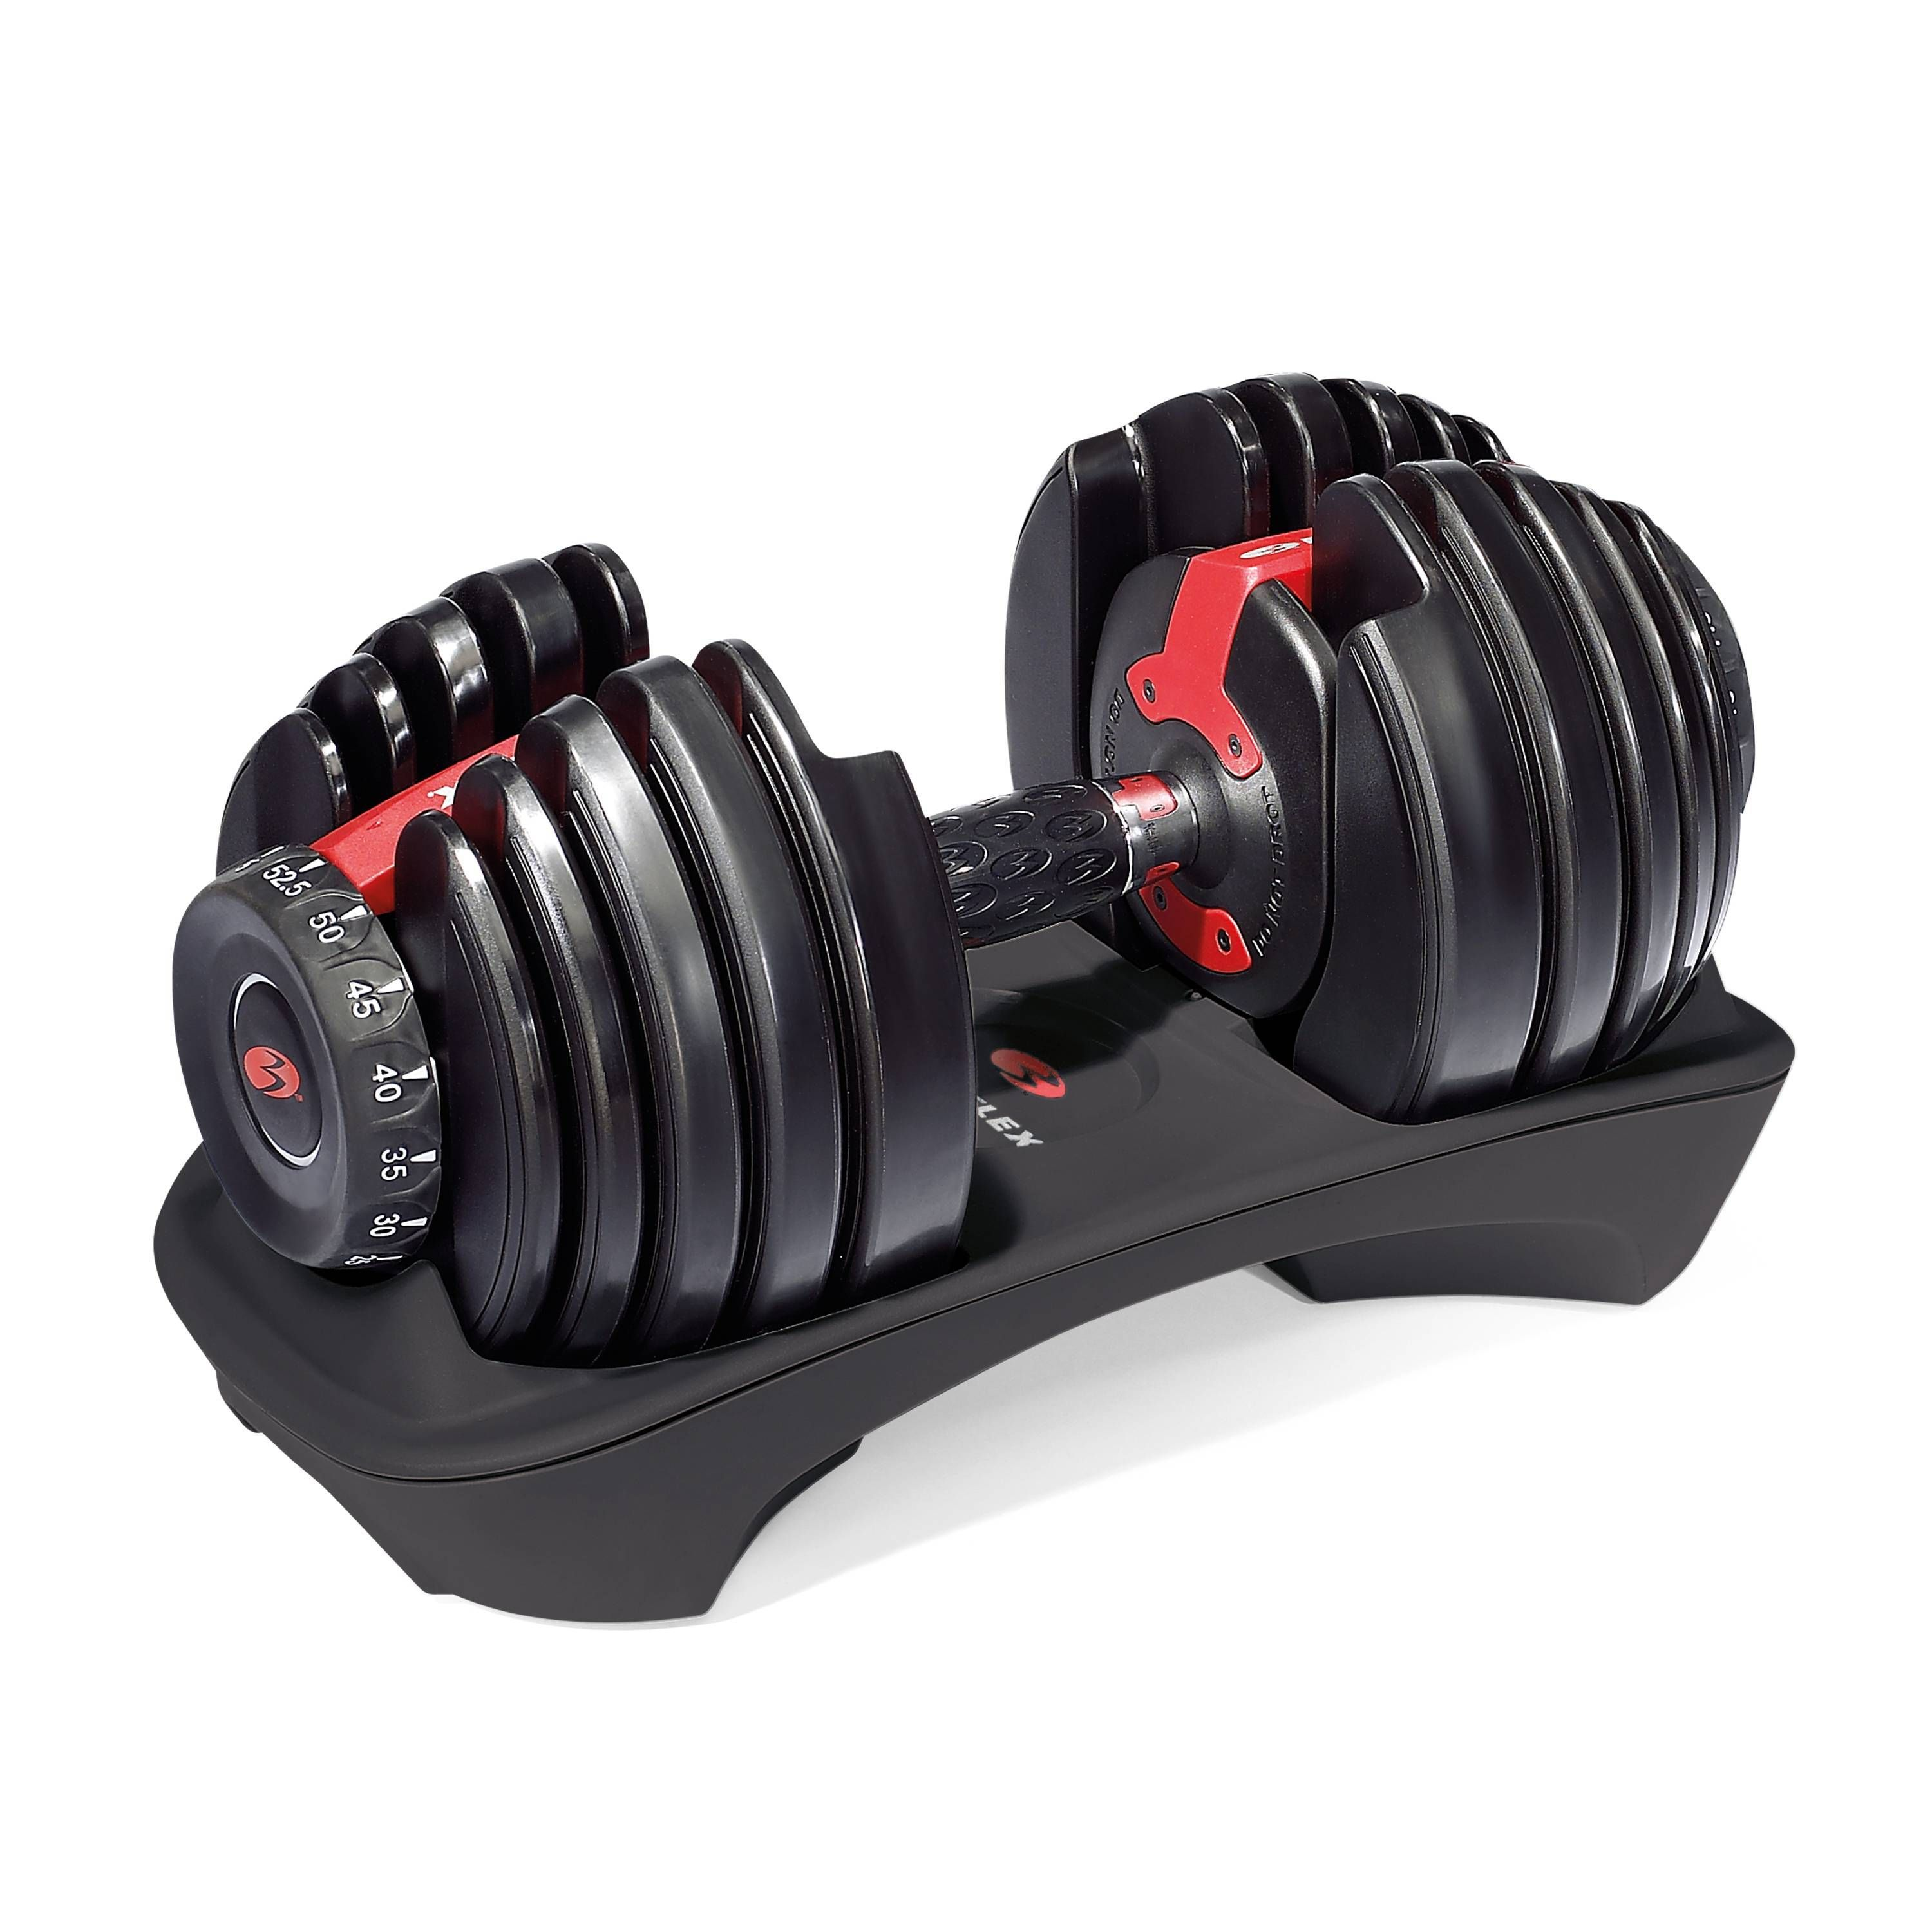 Selecttech 552 Adjustable Dumbbells Yeasave In 2020 Bowflex Adjustable Dumbbells Adjustable Dumbbell Set